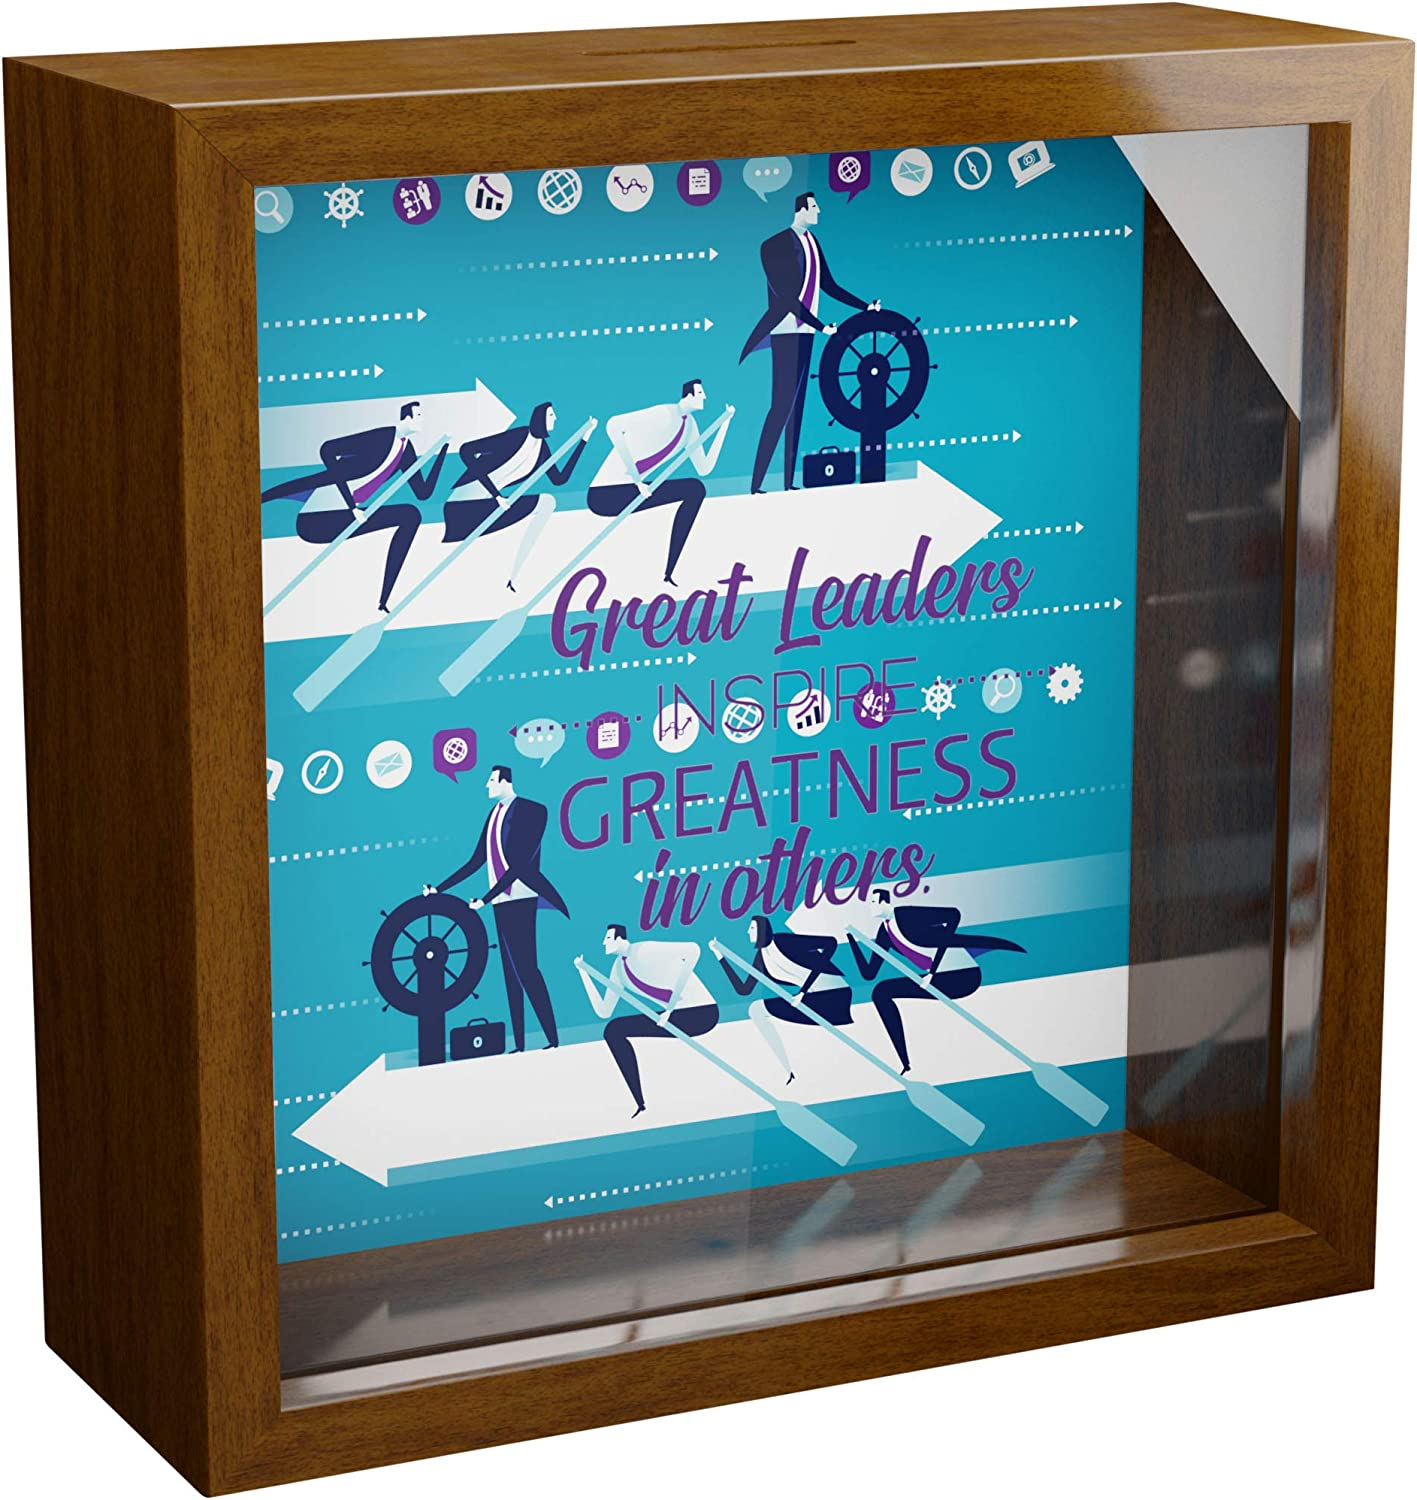 Manager Gifts   6x6x2 Wooden Shadow Box Ideal for Male or Female Managers   Perfect Boss Lady Gift   Best Appreciation Presents for Boss Day   Funny Art Print for Supervisor   Unique Office Picture